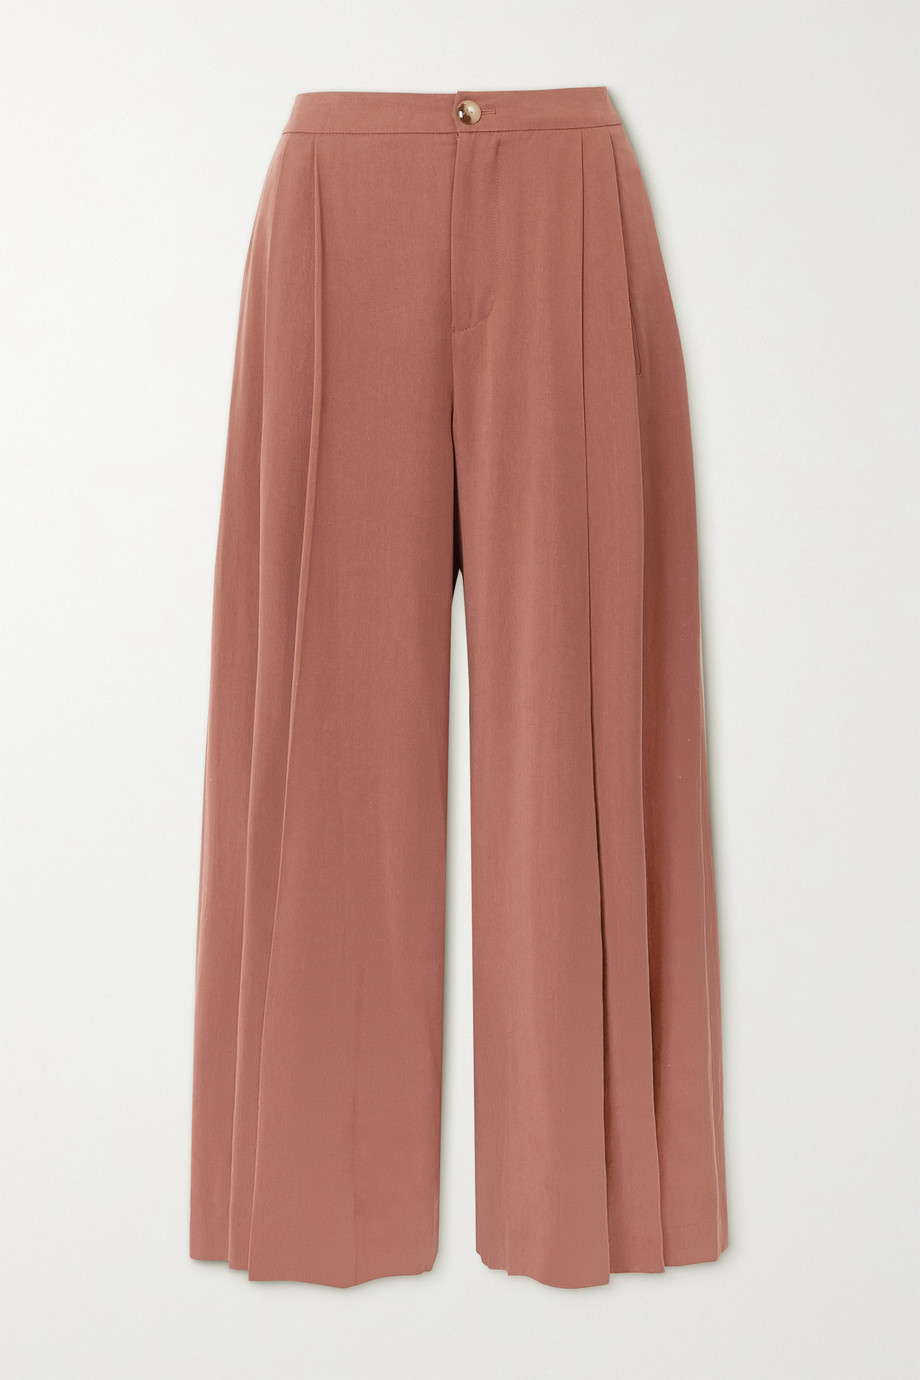 VINCE Pleated Lyocell culottes